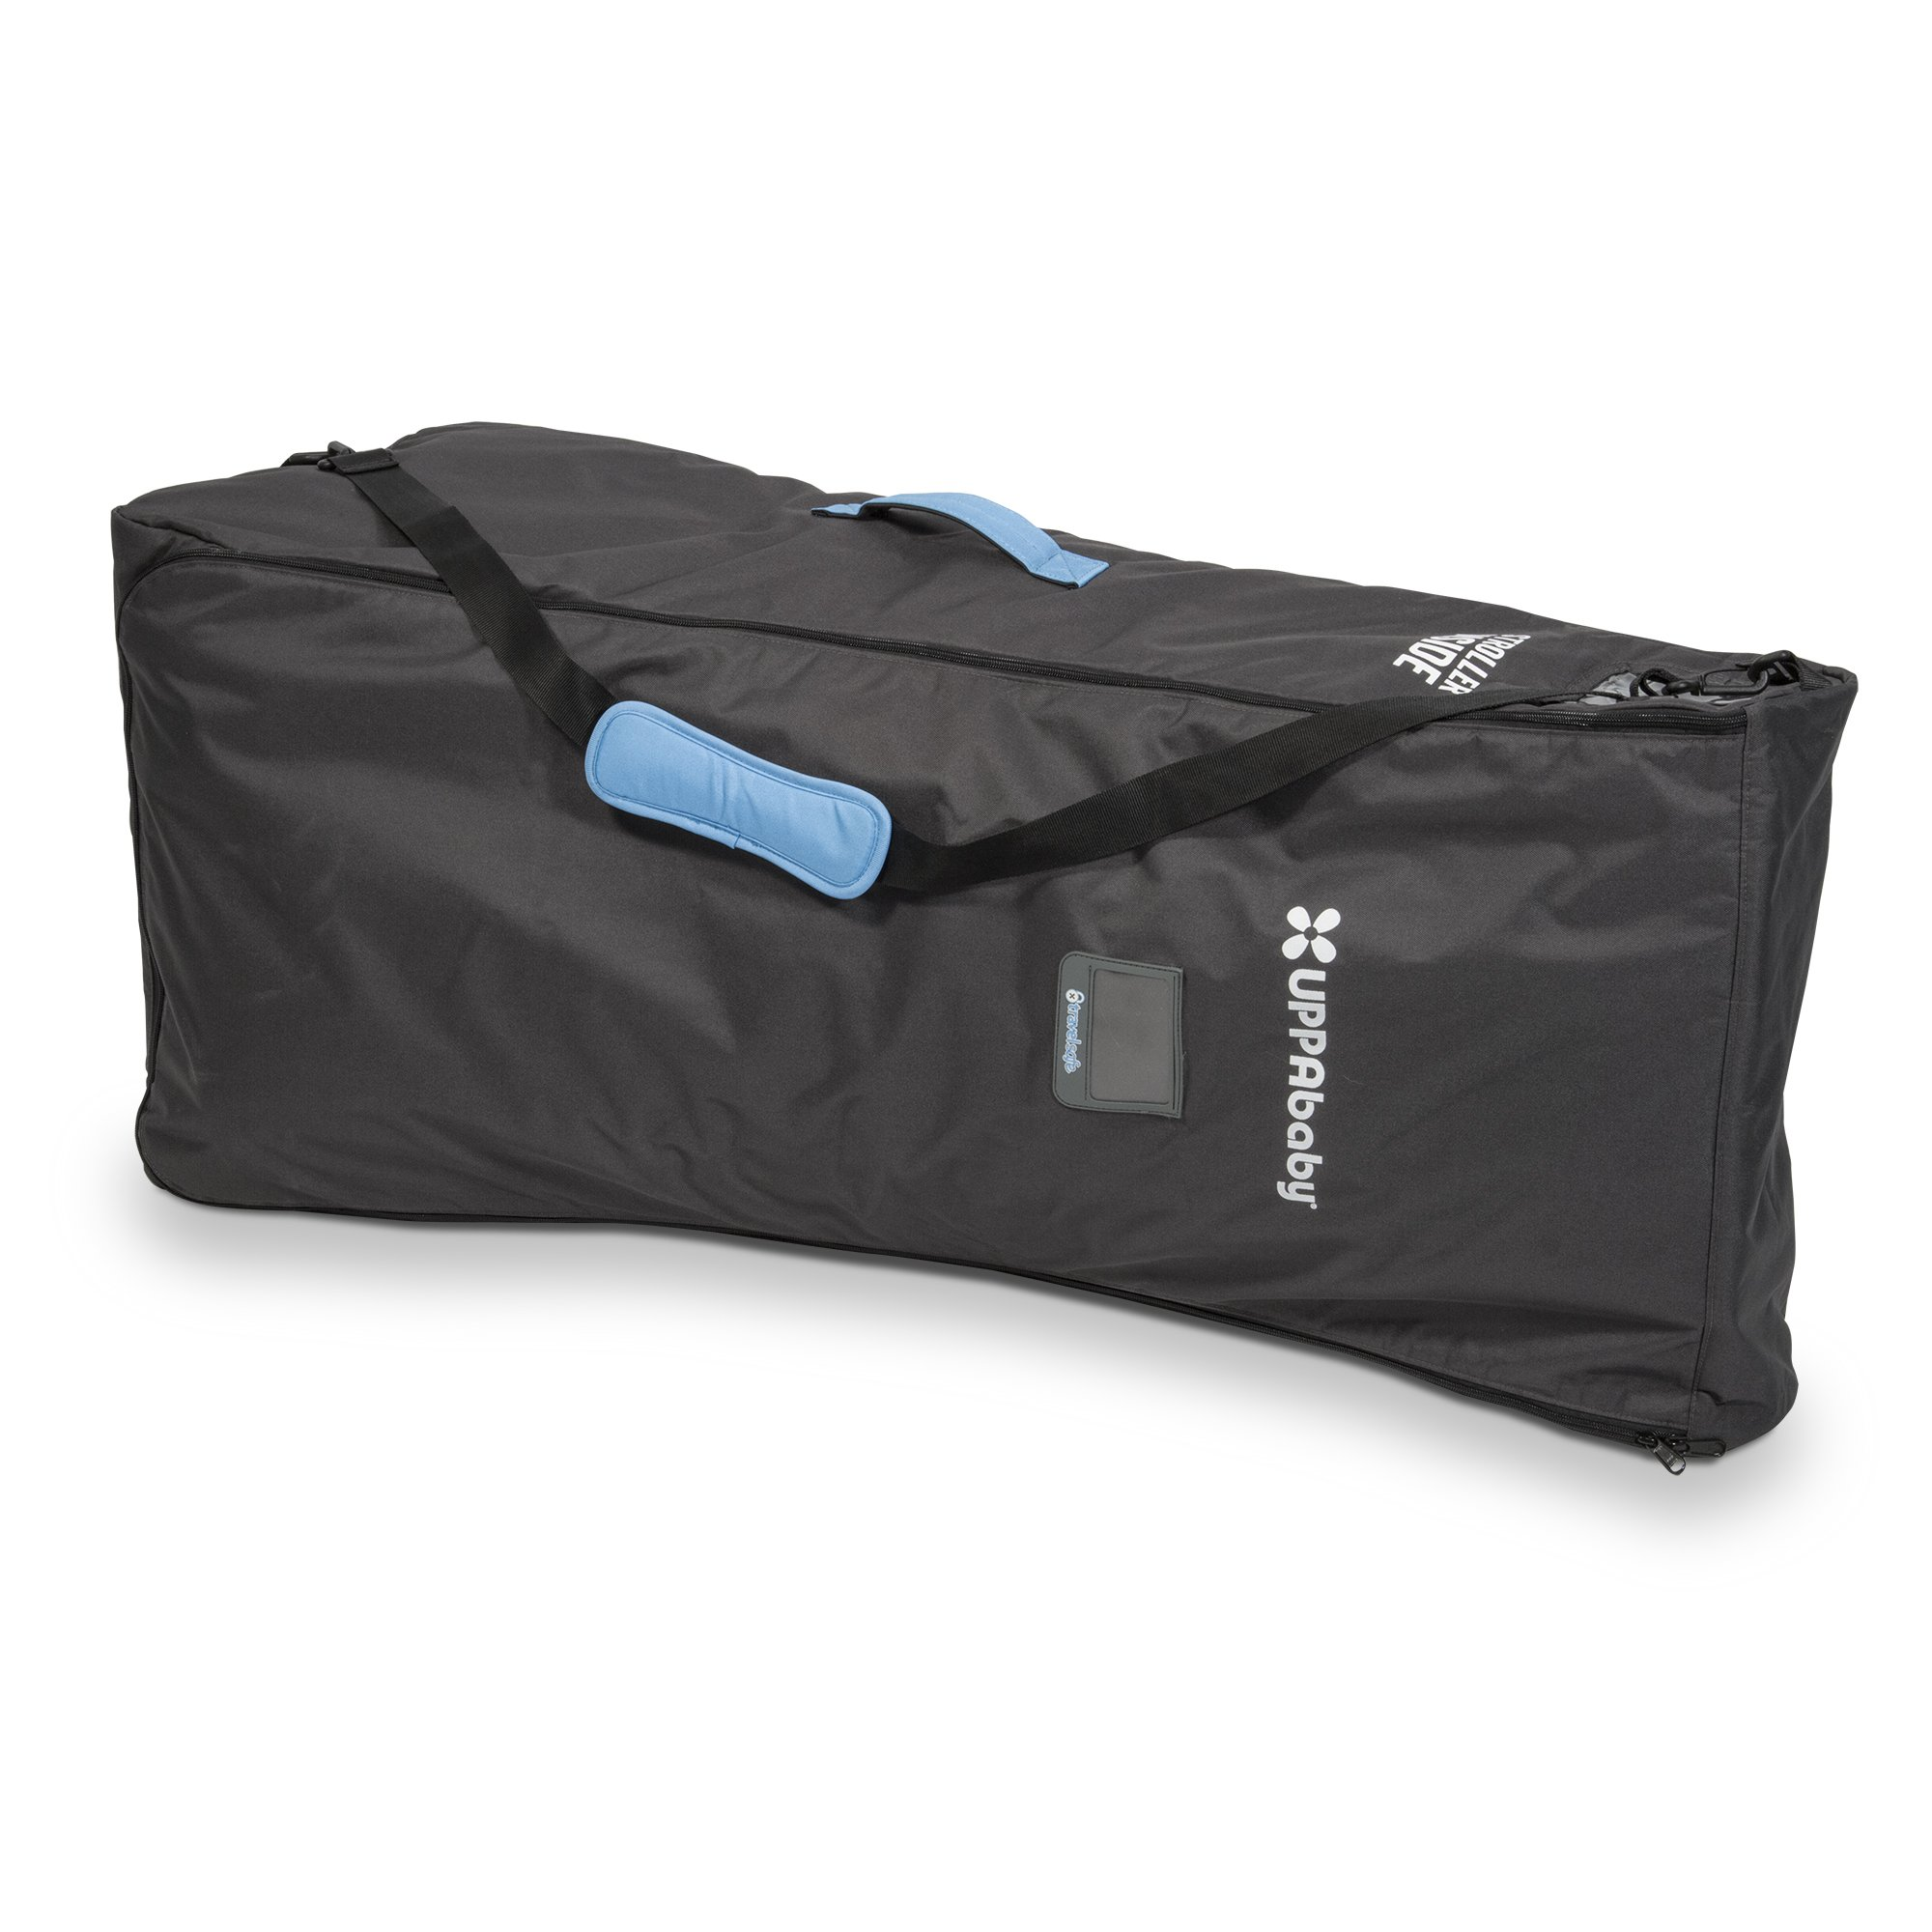 UPPAbaby G-LINK Travel Bag with TravelSafe by UPPAbaby